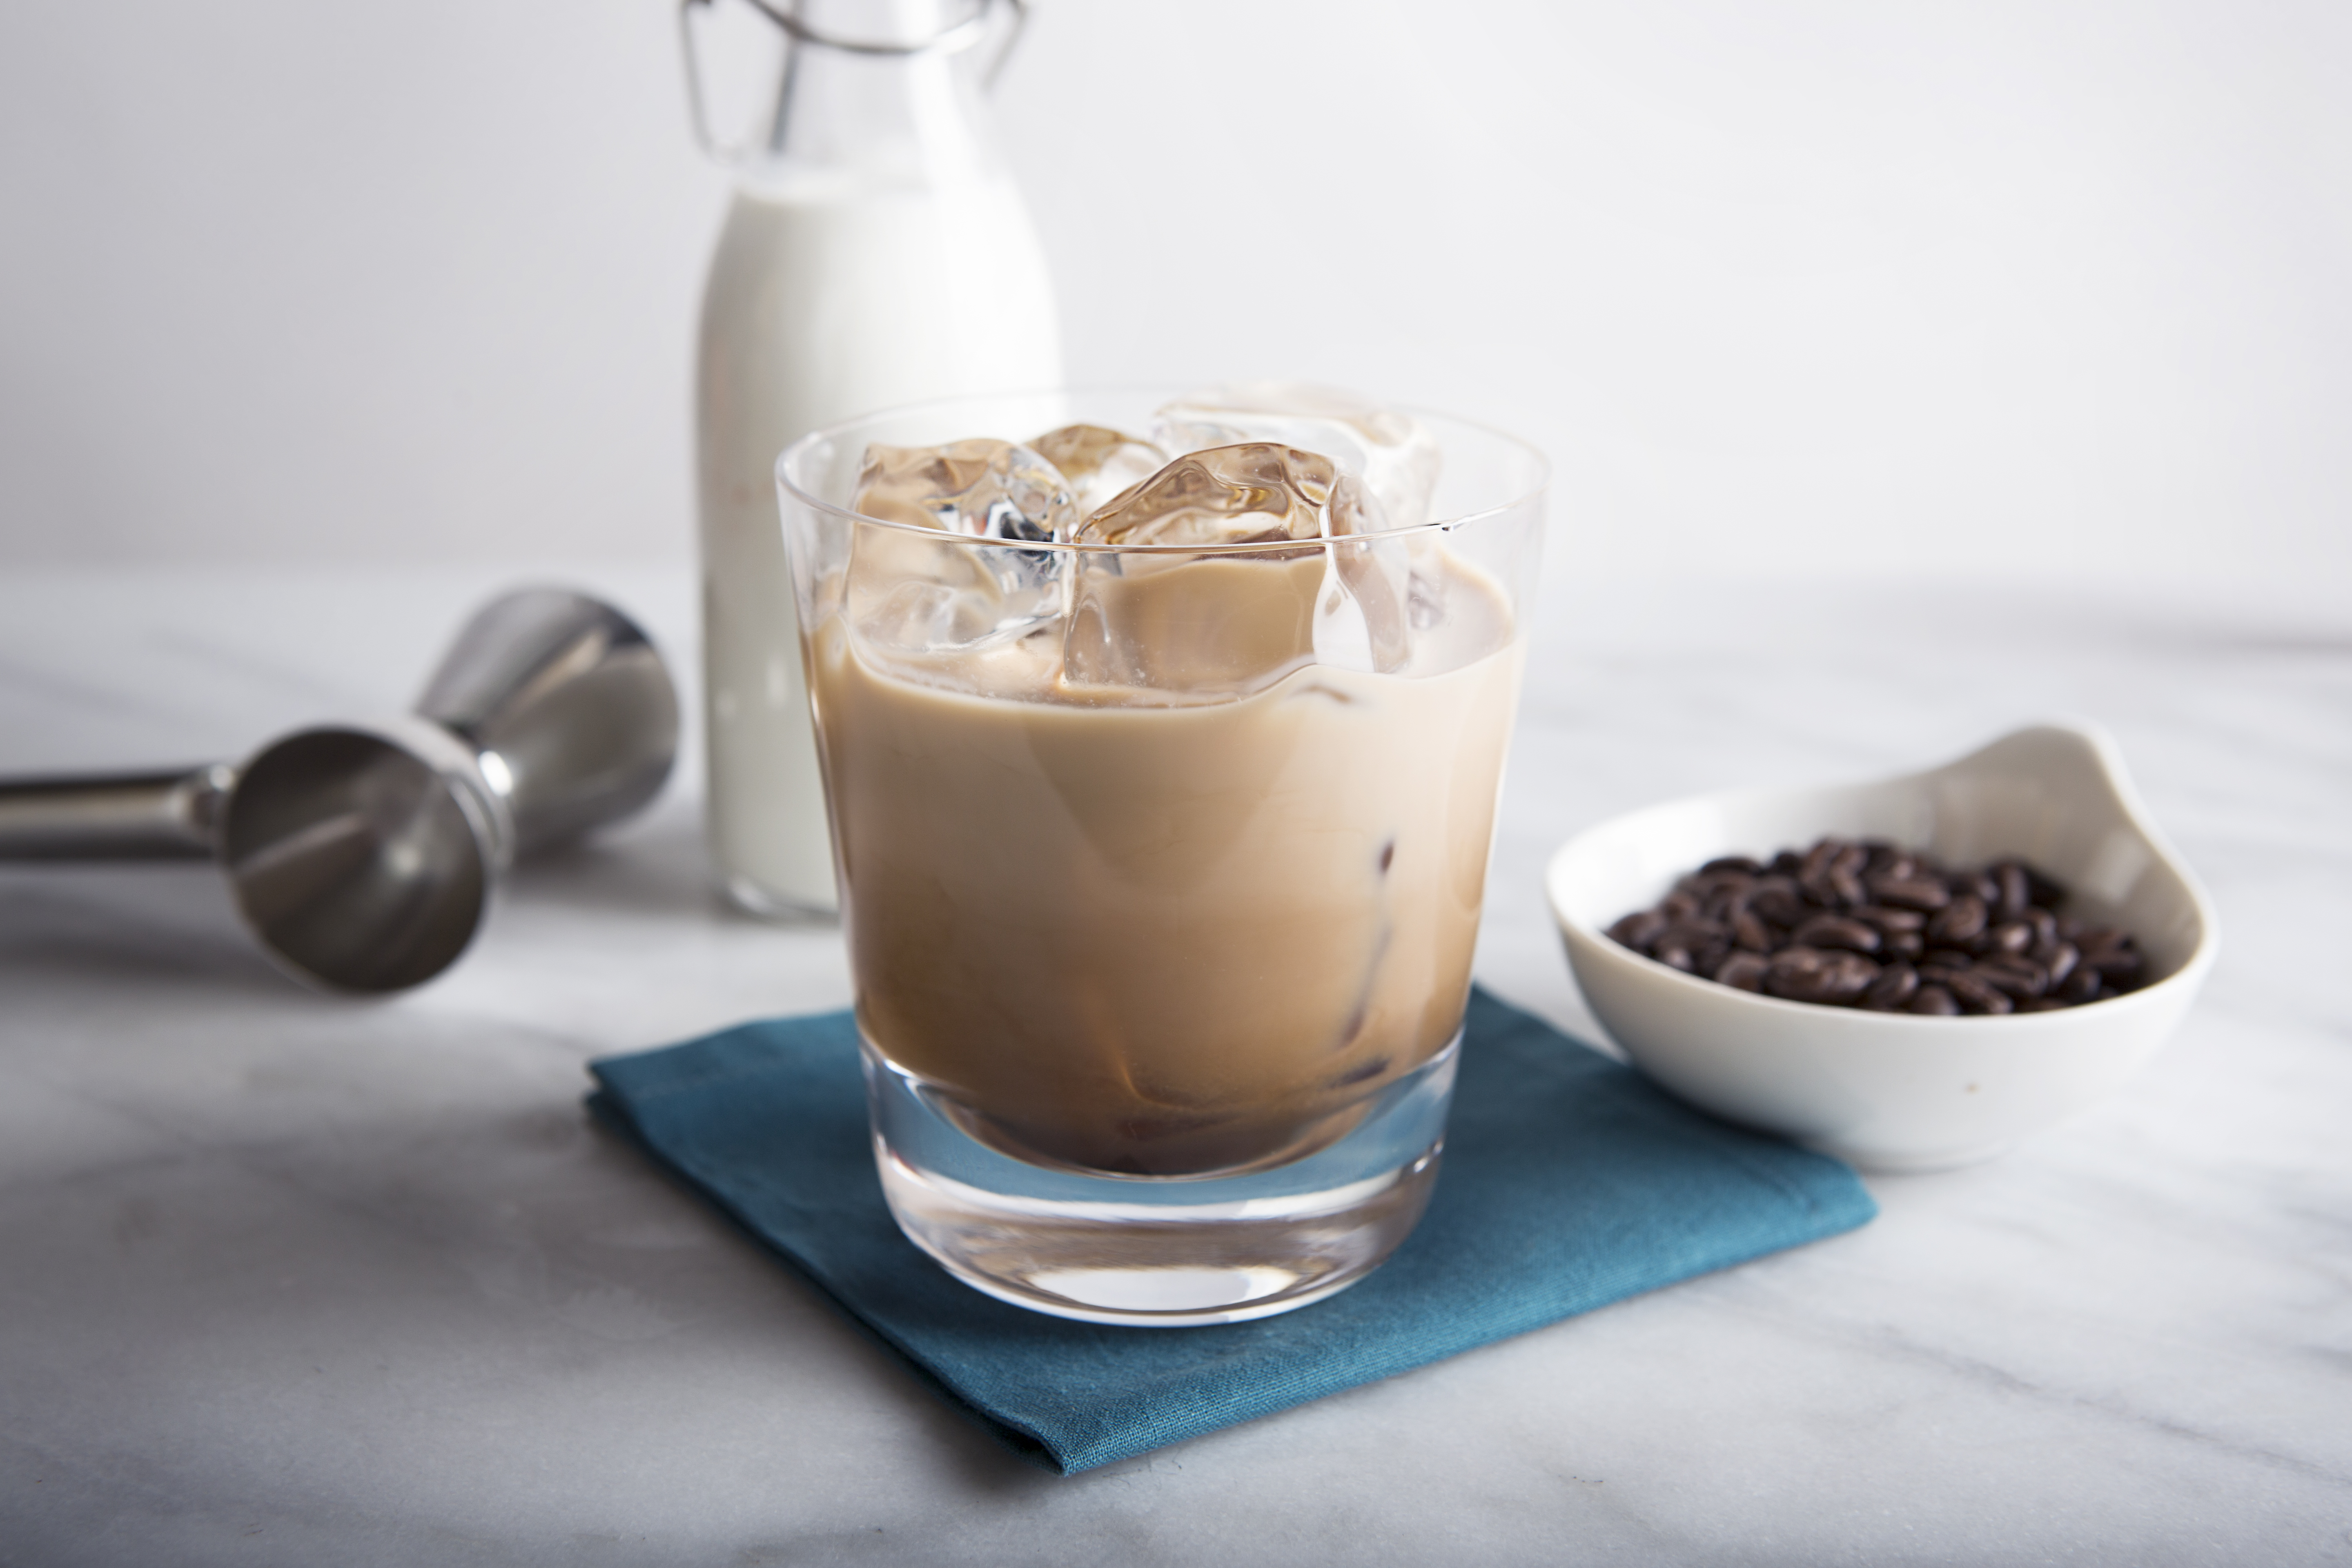 The Double Dutch Russian is a blend of of double espresso and nero espresso vodkas, along with half and half.